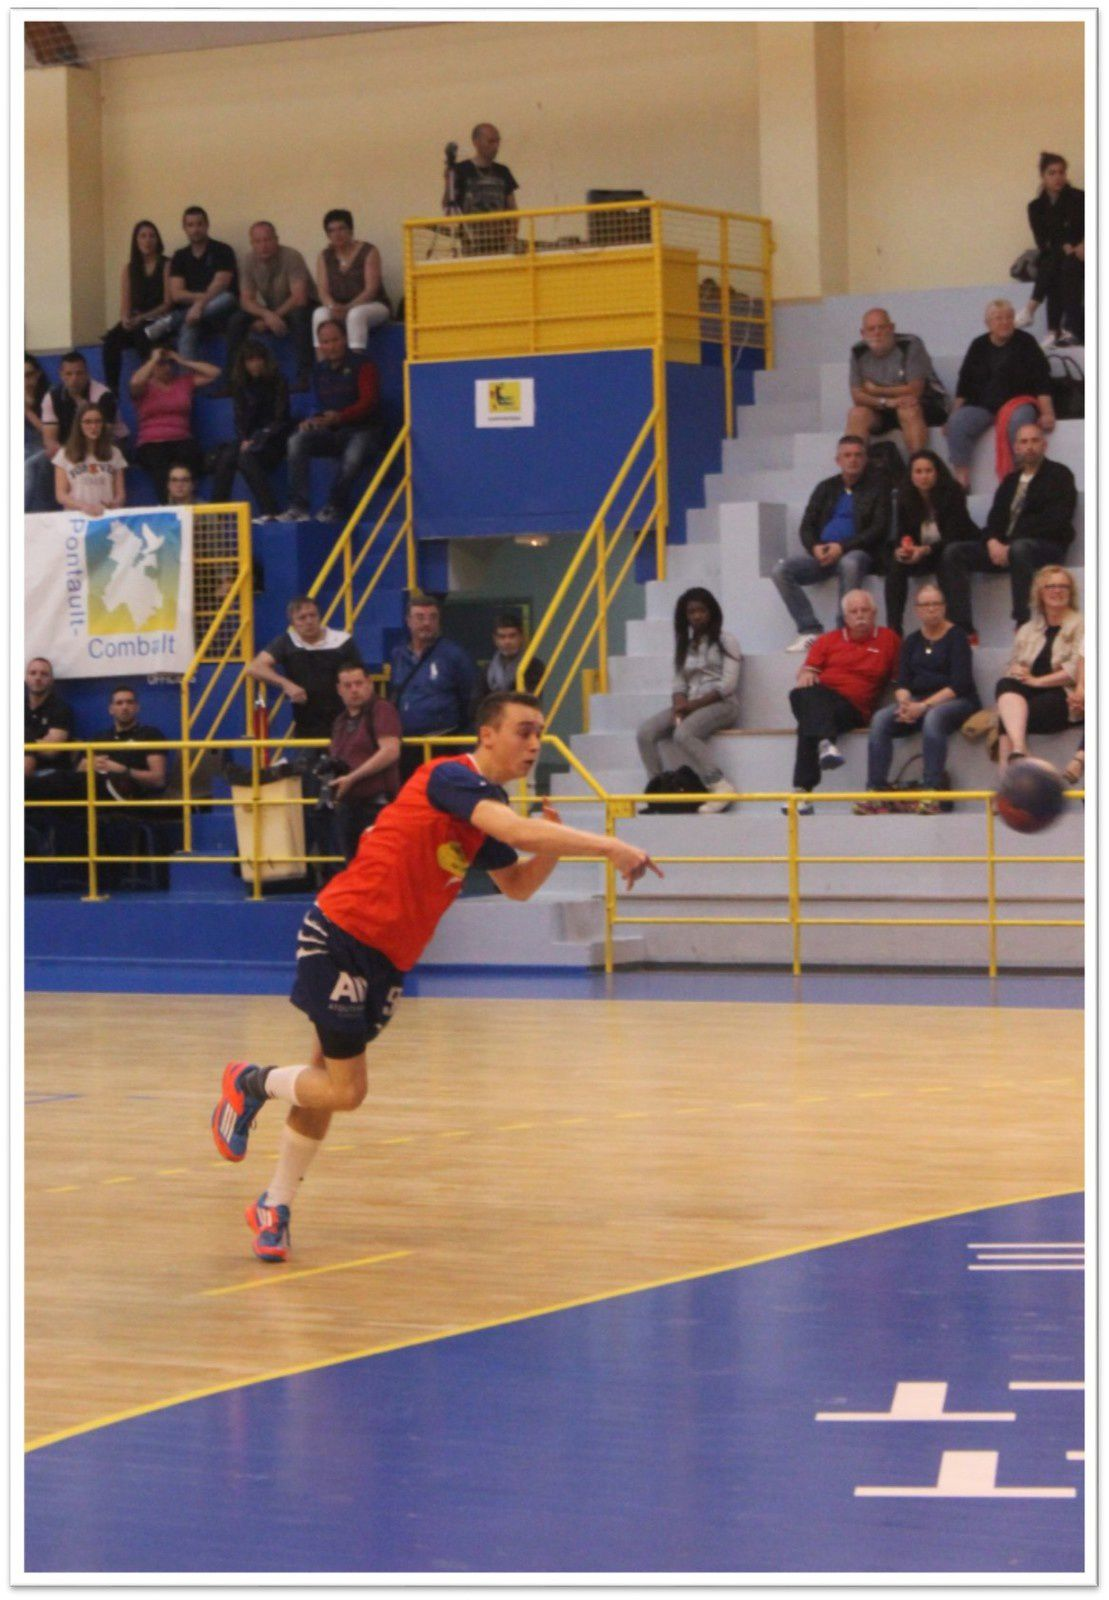 Tour Final CdF 2015 - Entente PAO vs PCT 77 (09.05.2015) 2/2